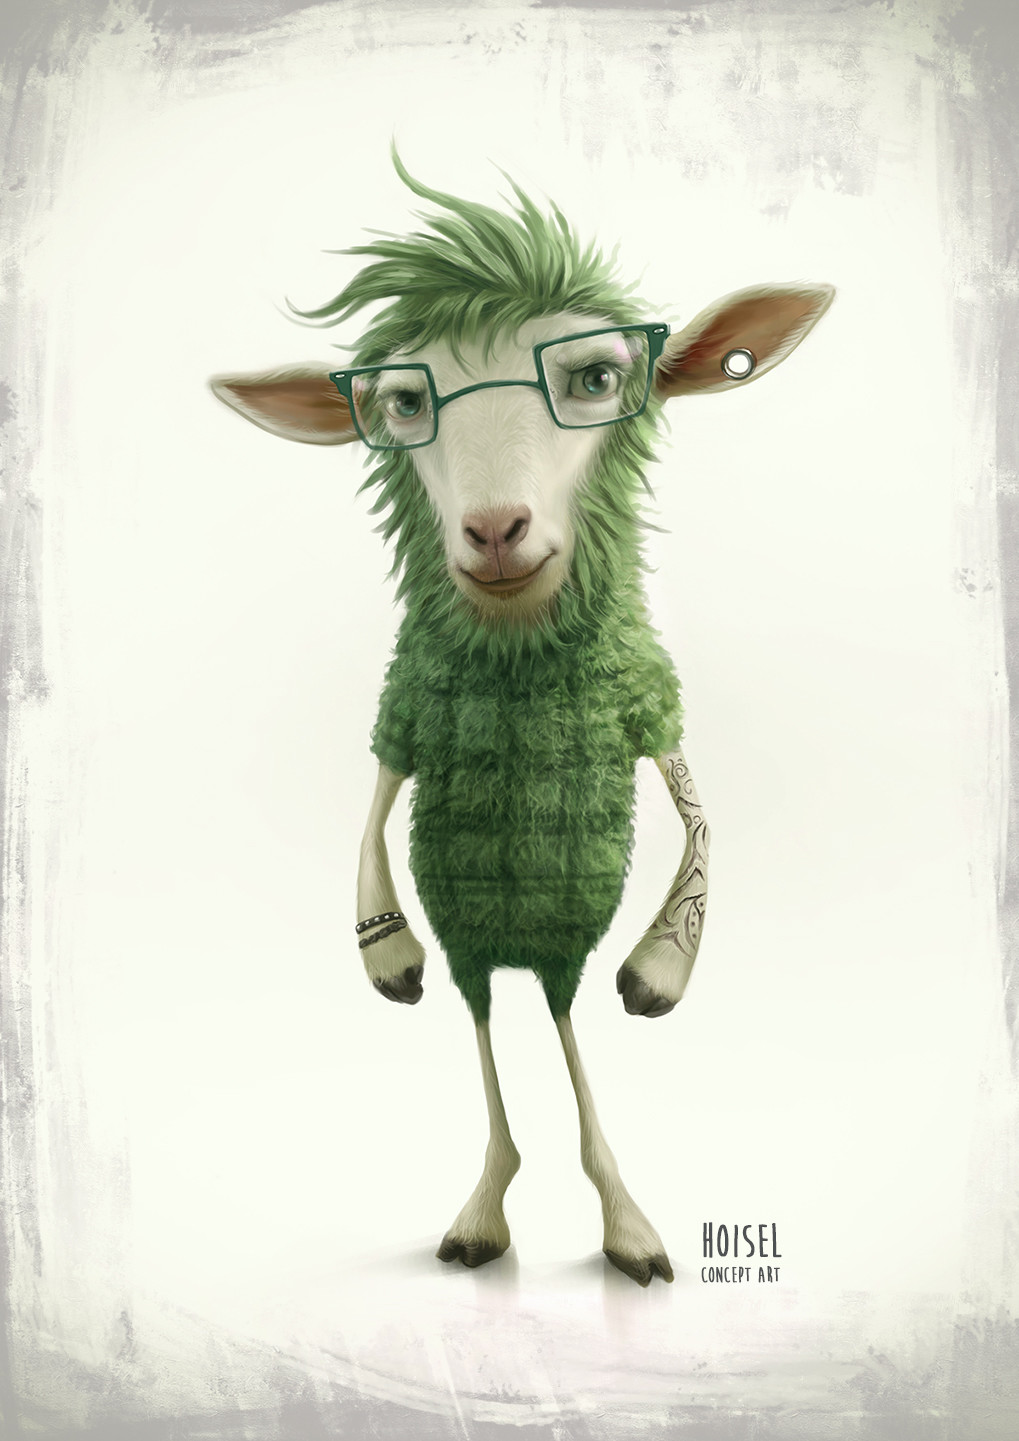 tiago-hoisel-green-sheep01